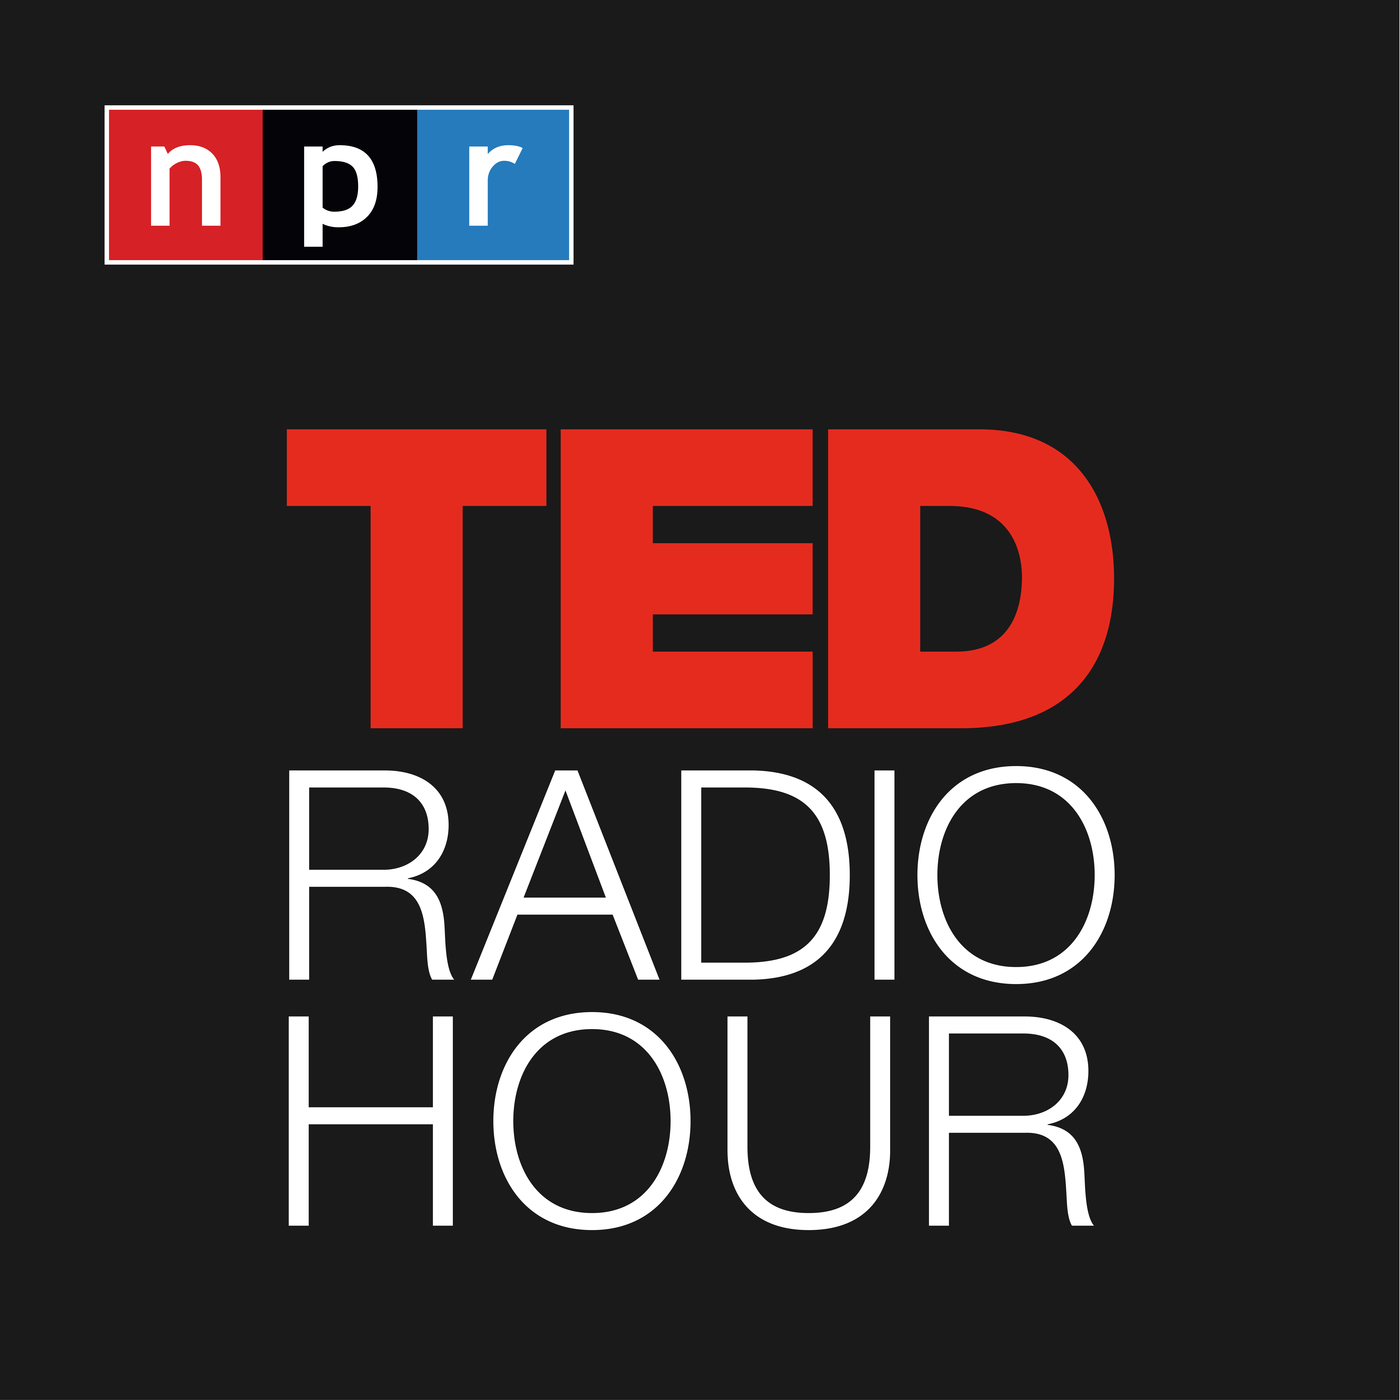 TED Radio Hour podcast logo